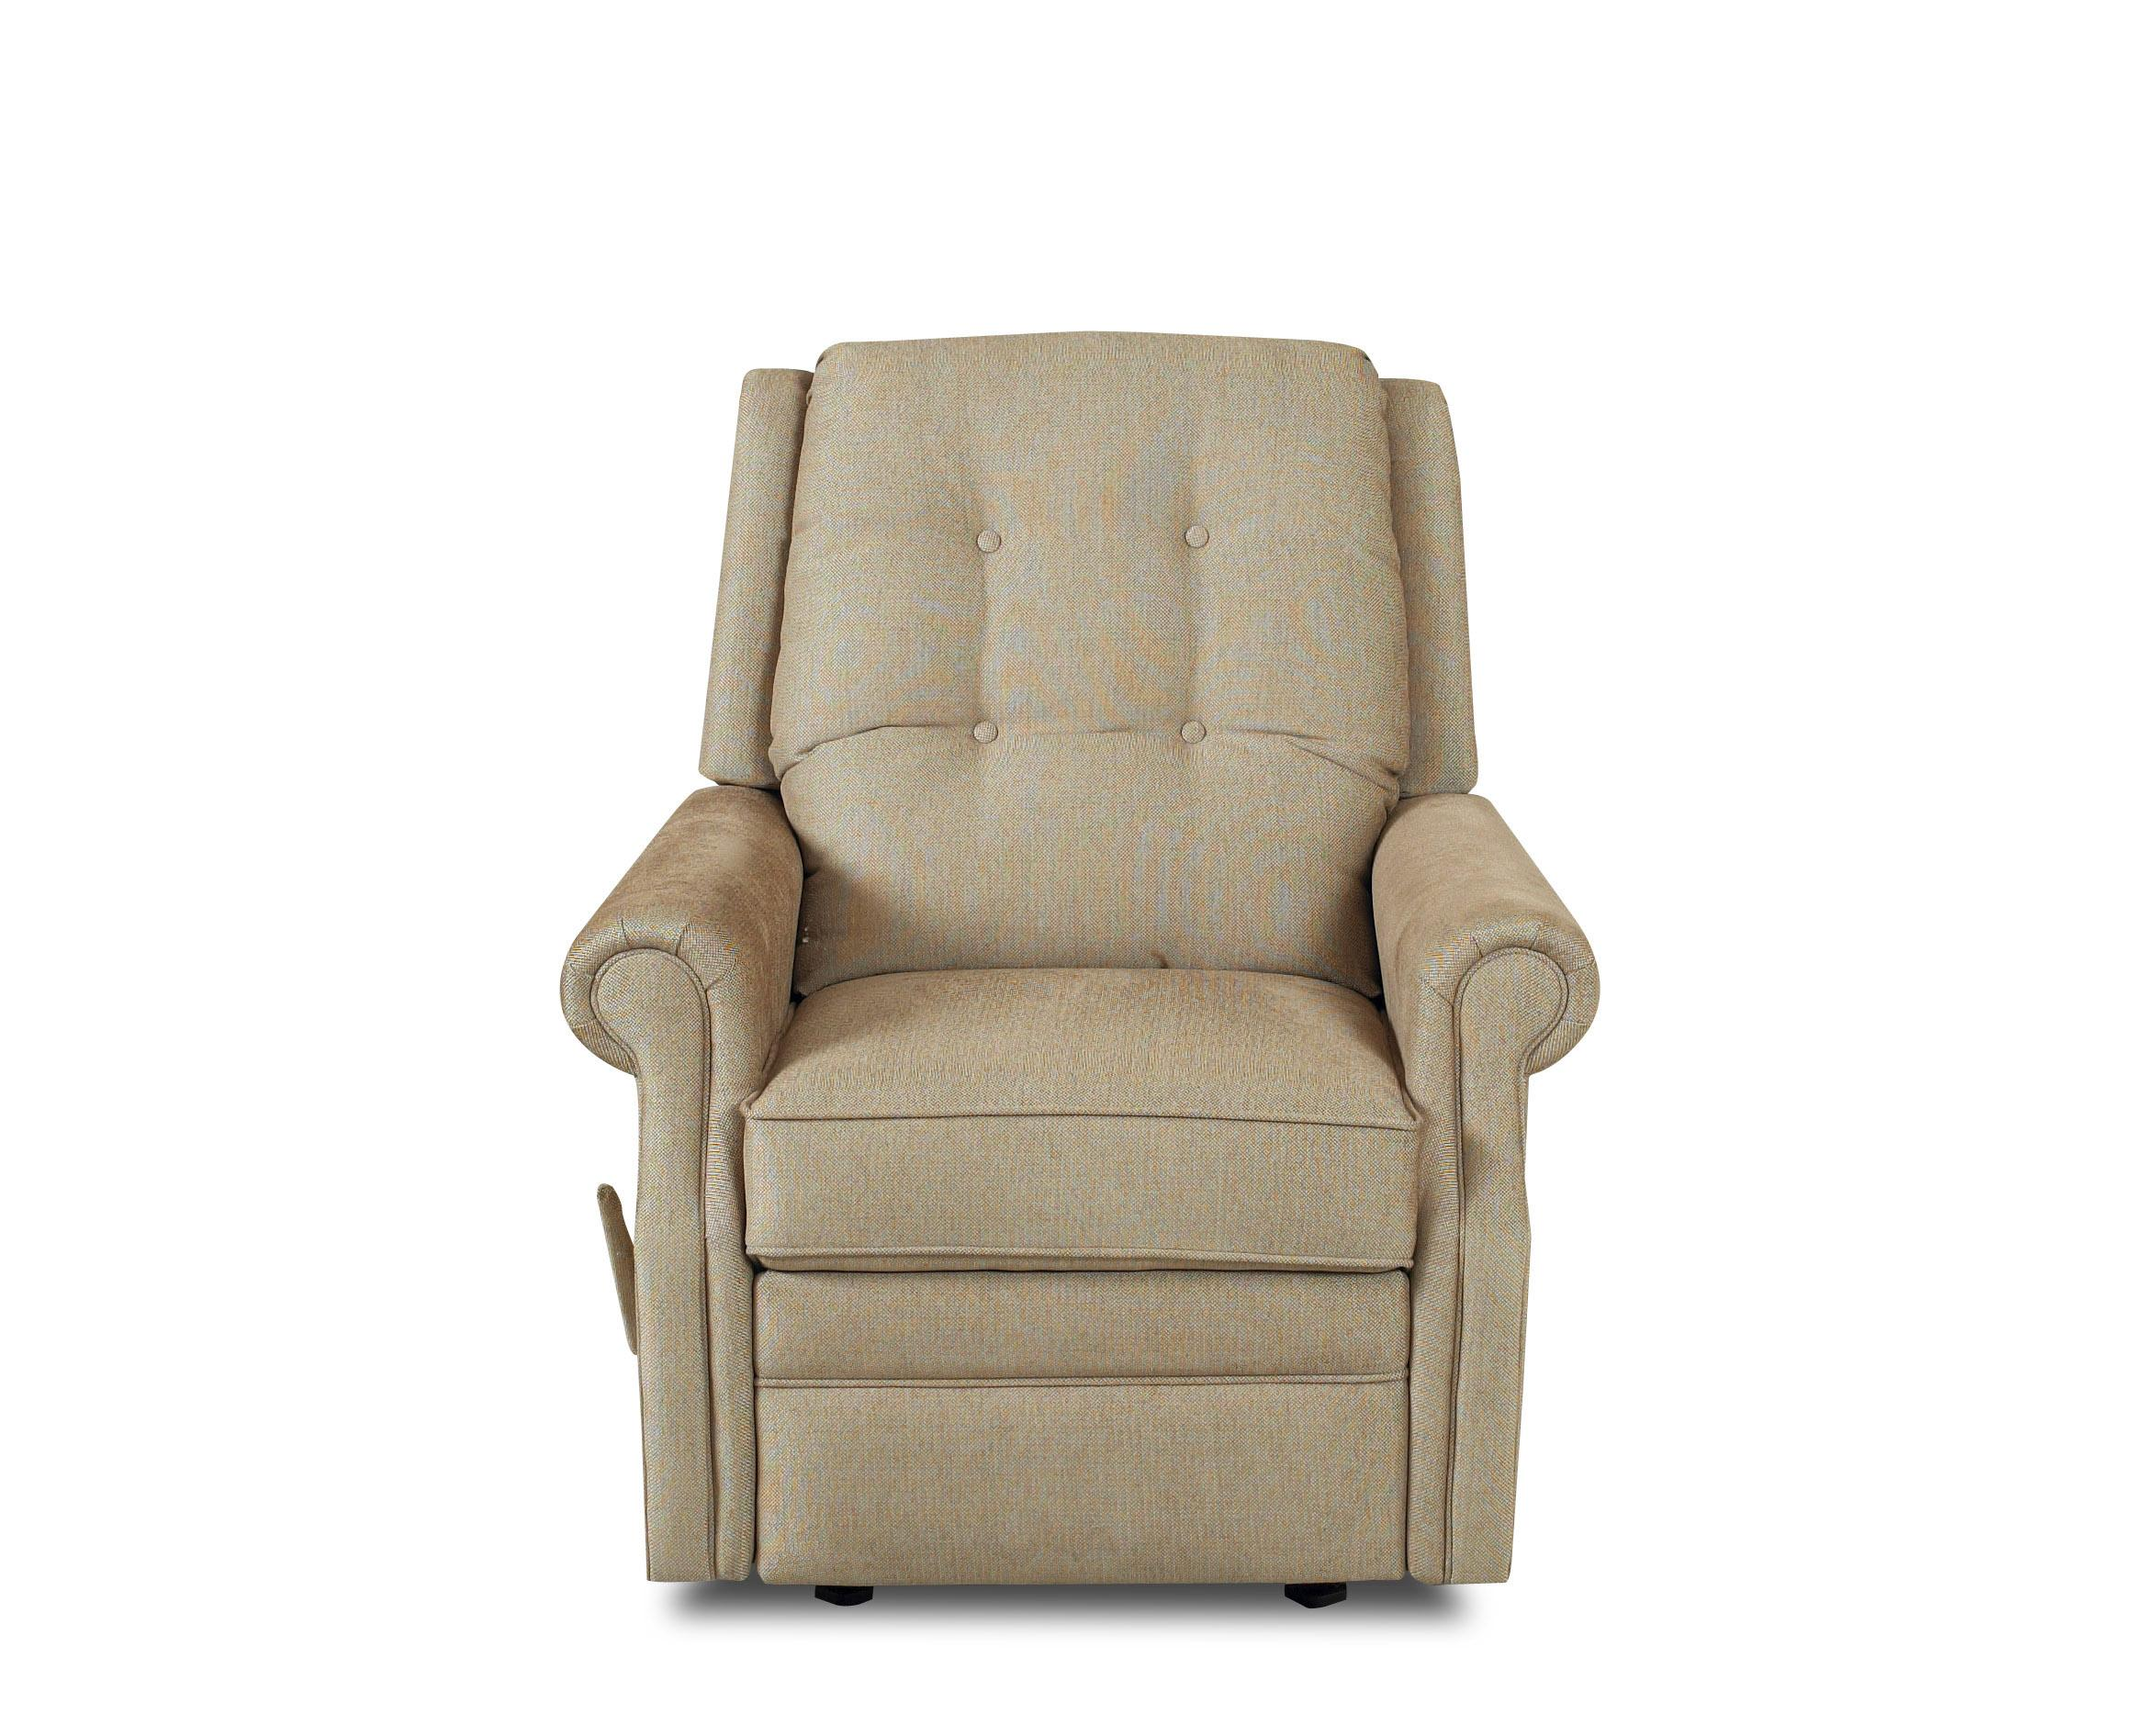 Transitional Swivel Gliding Reclining Chair With Button